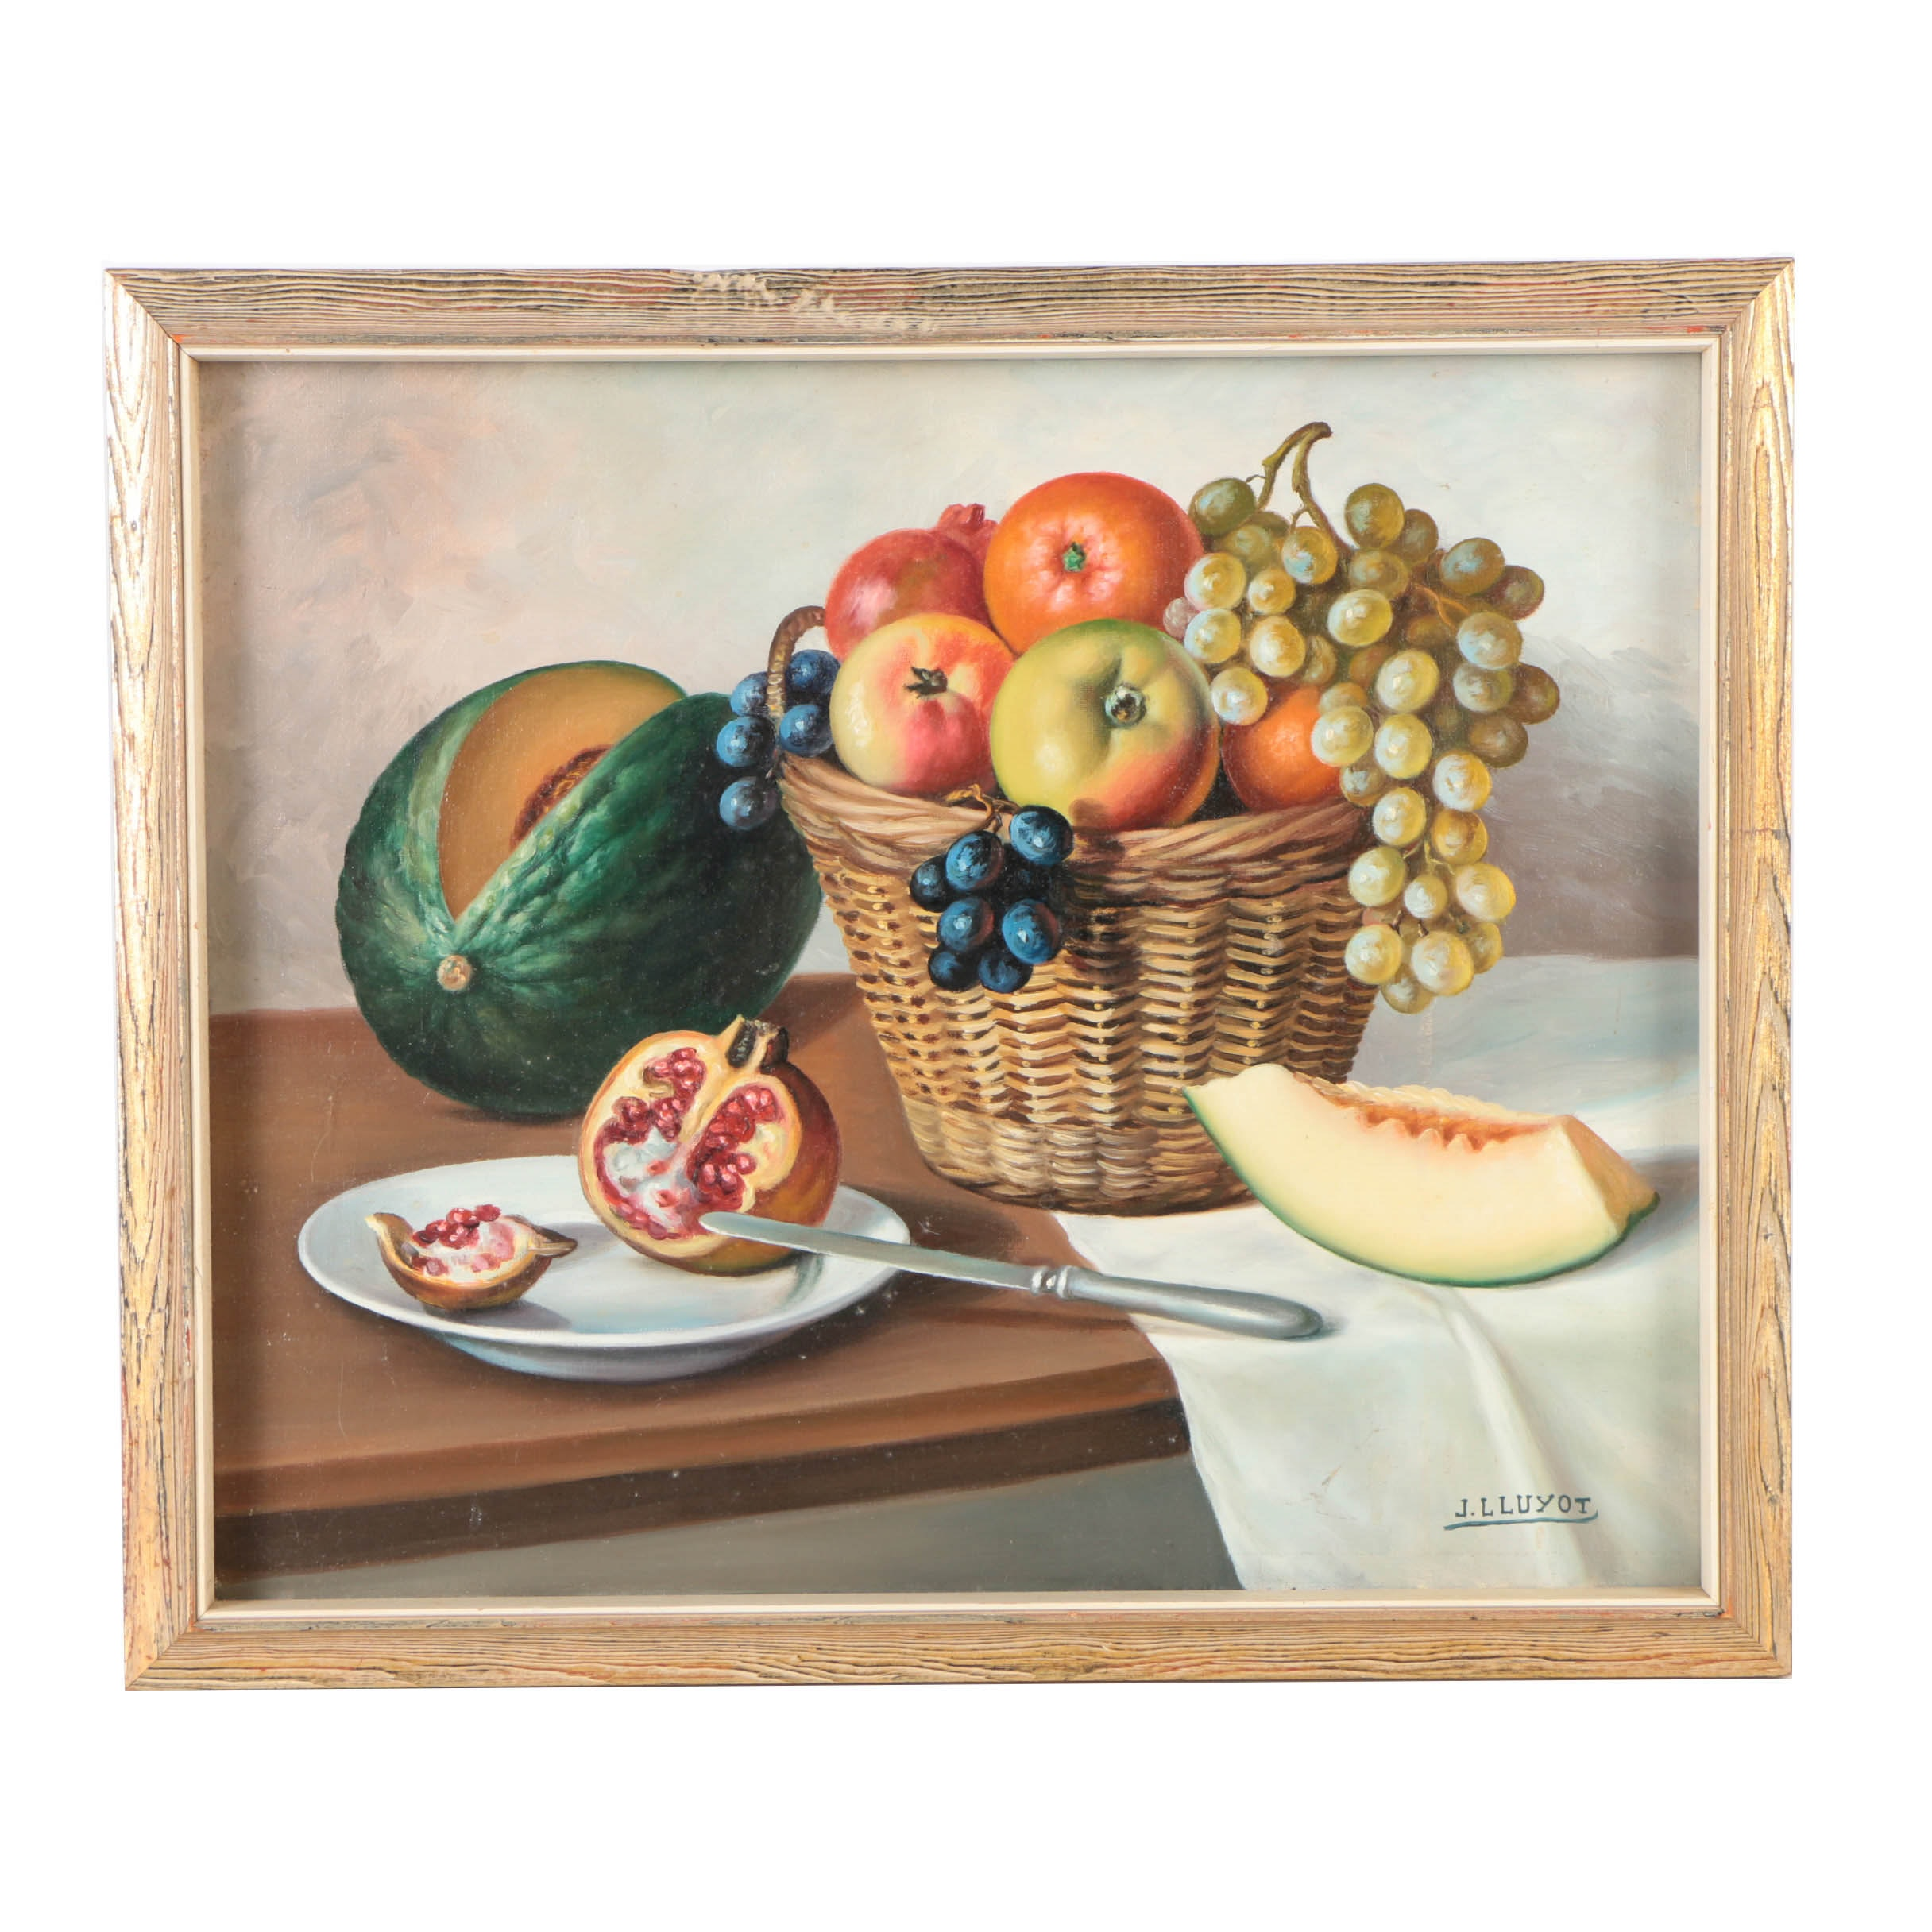 J. Lluyot Oil Painting on Canvas of Still Life